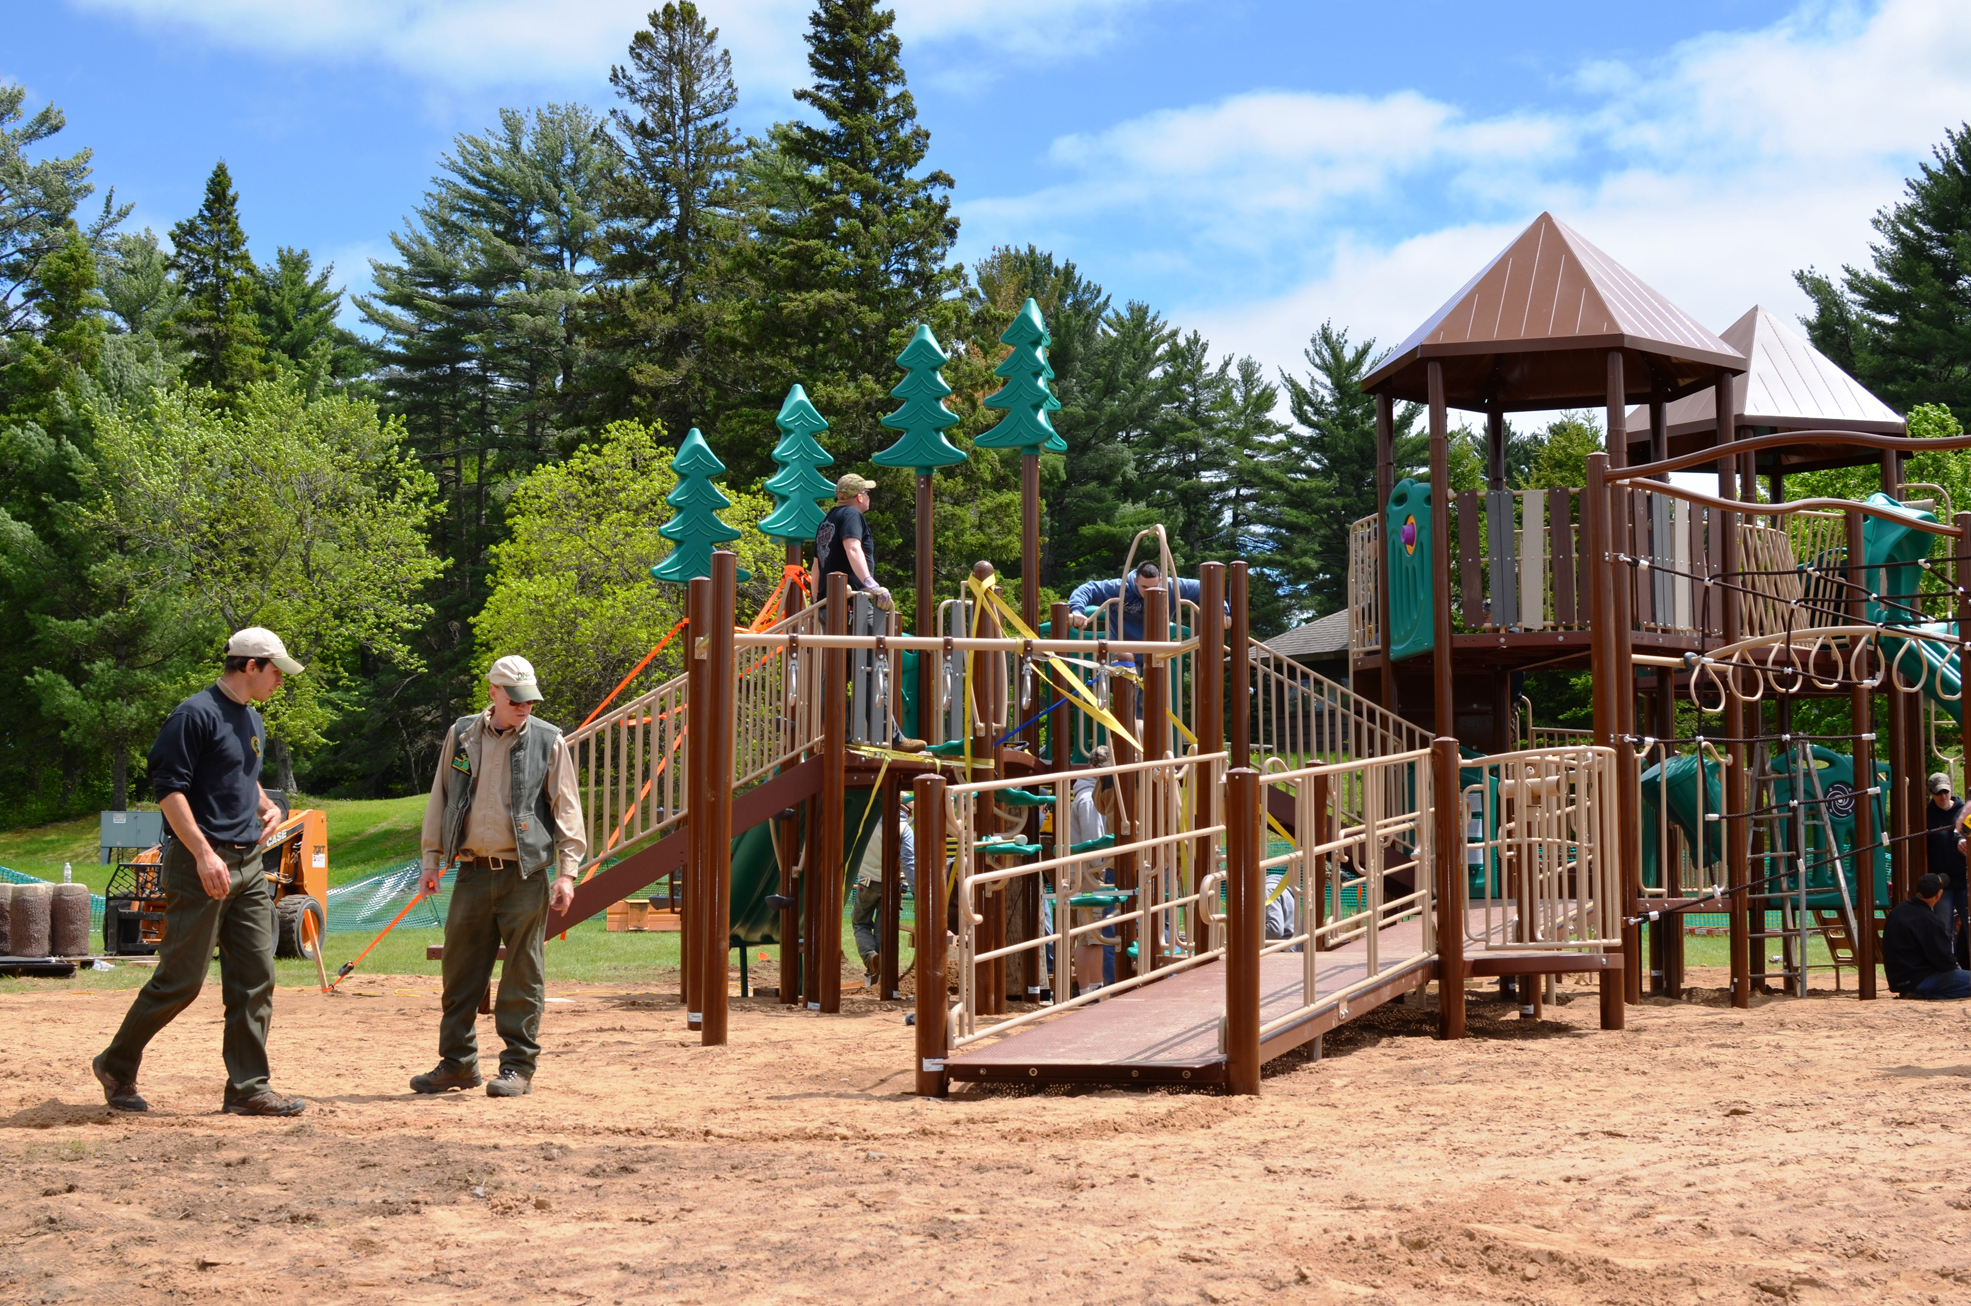 The playground at Van Riper State Park begins to take shape in Marquette County.